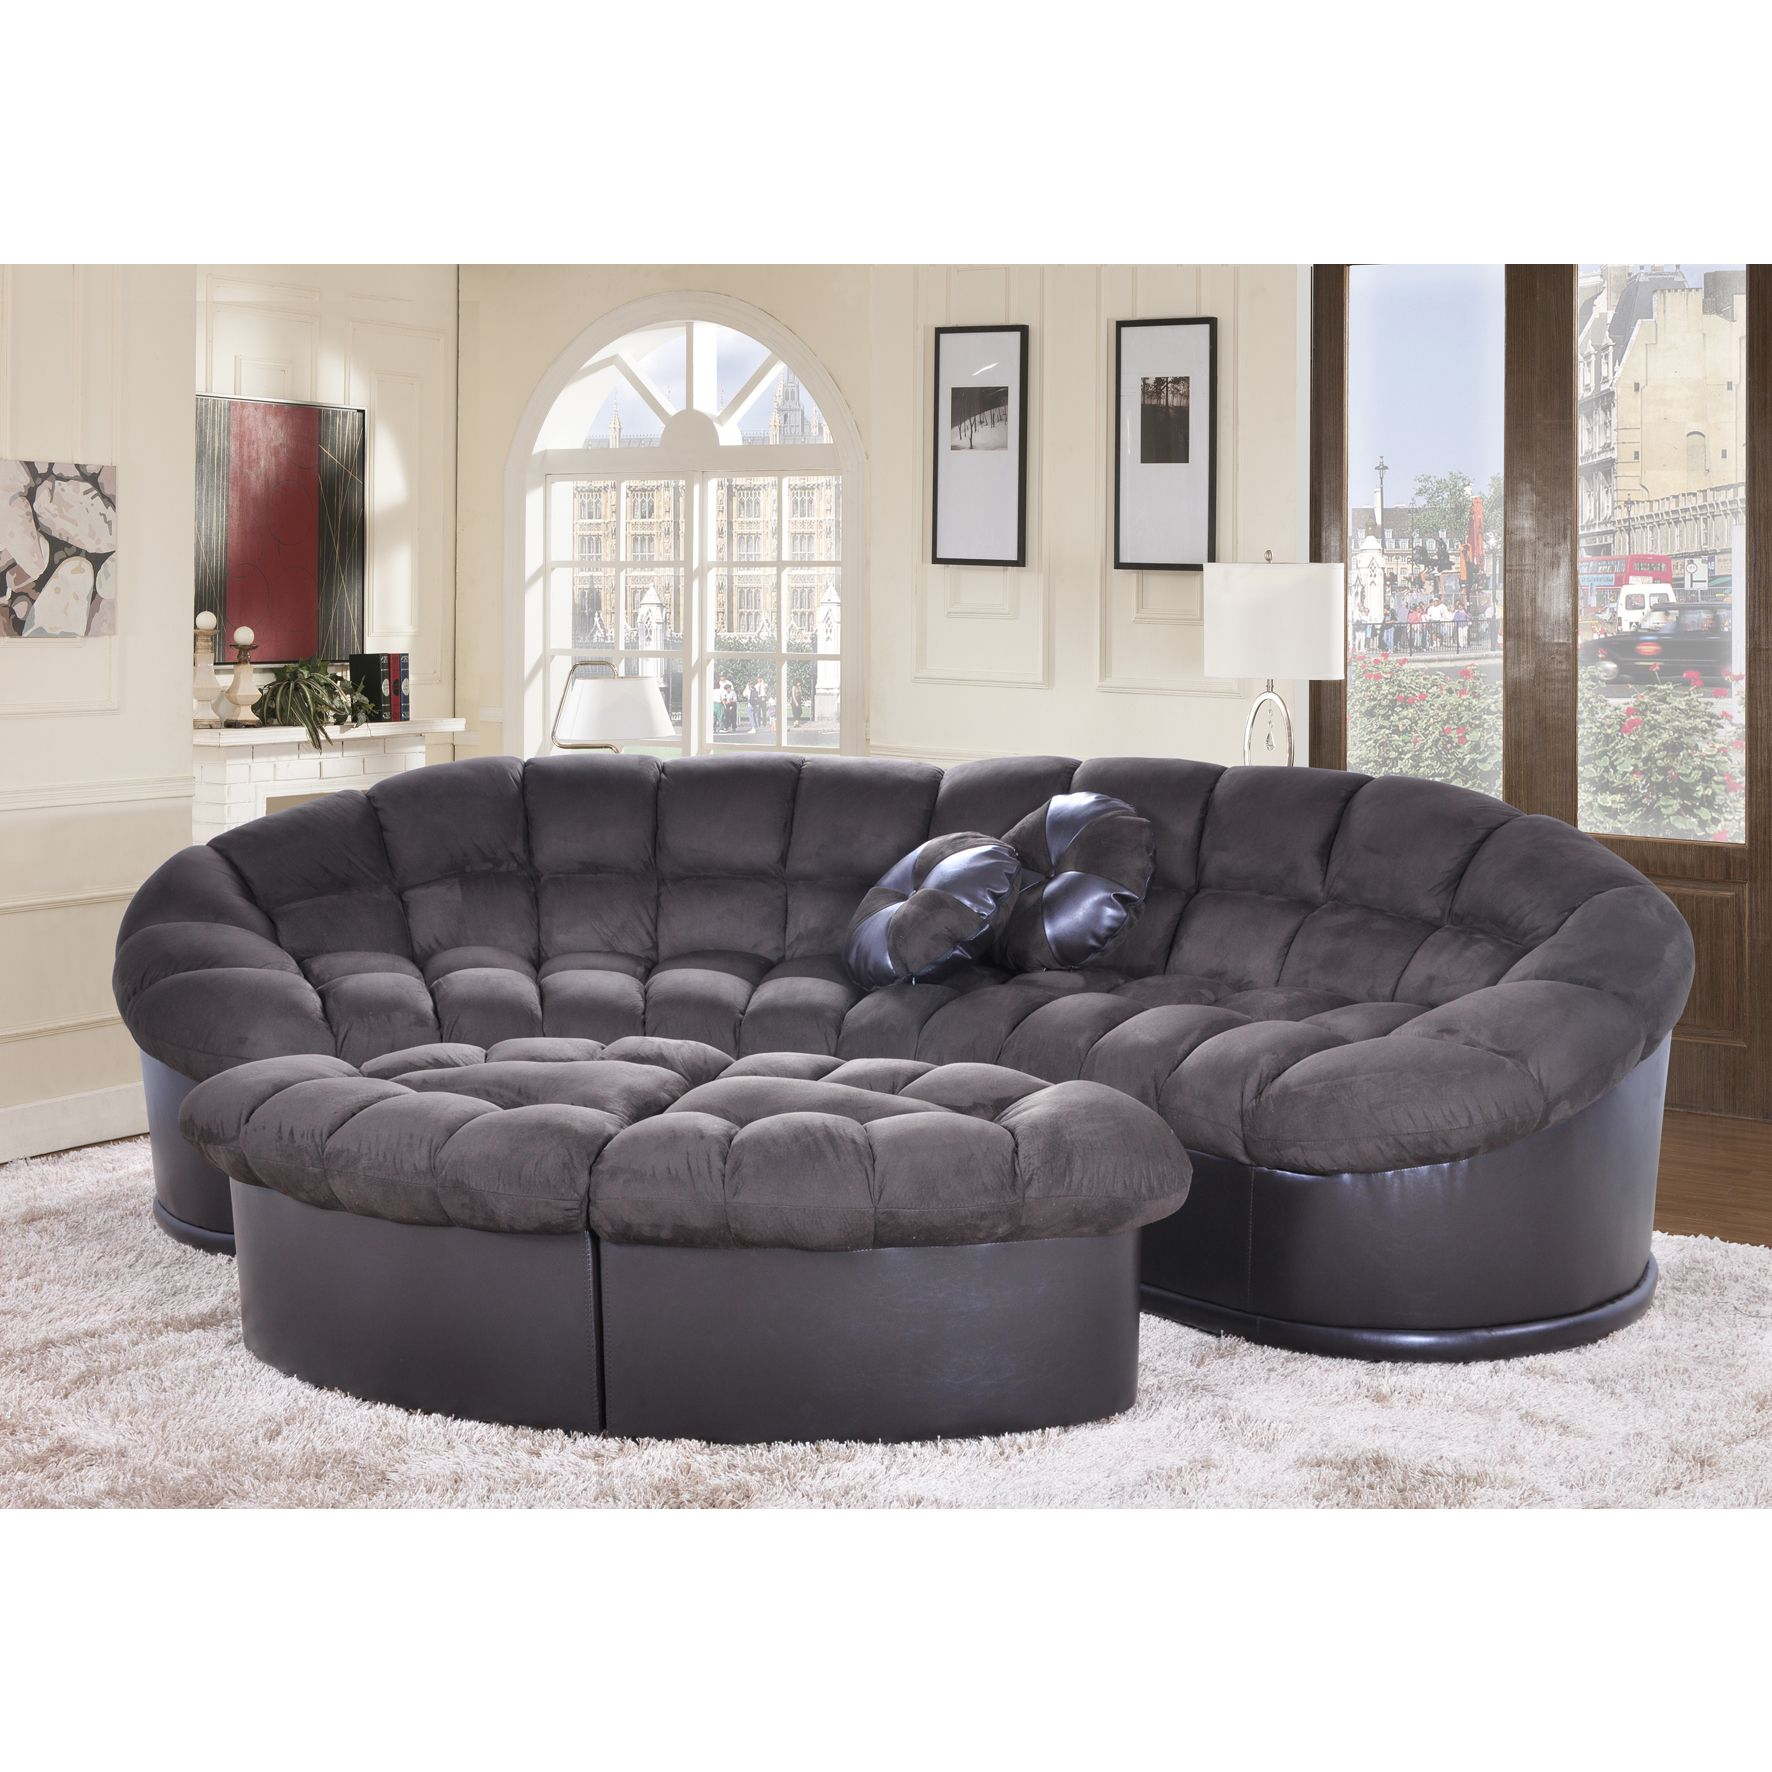 Diana 4 piece chocolate papasan modern microfiber sofa and for Comfortable living room sets